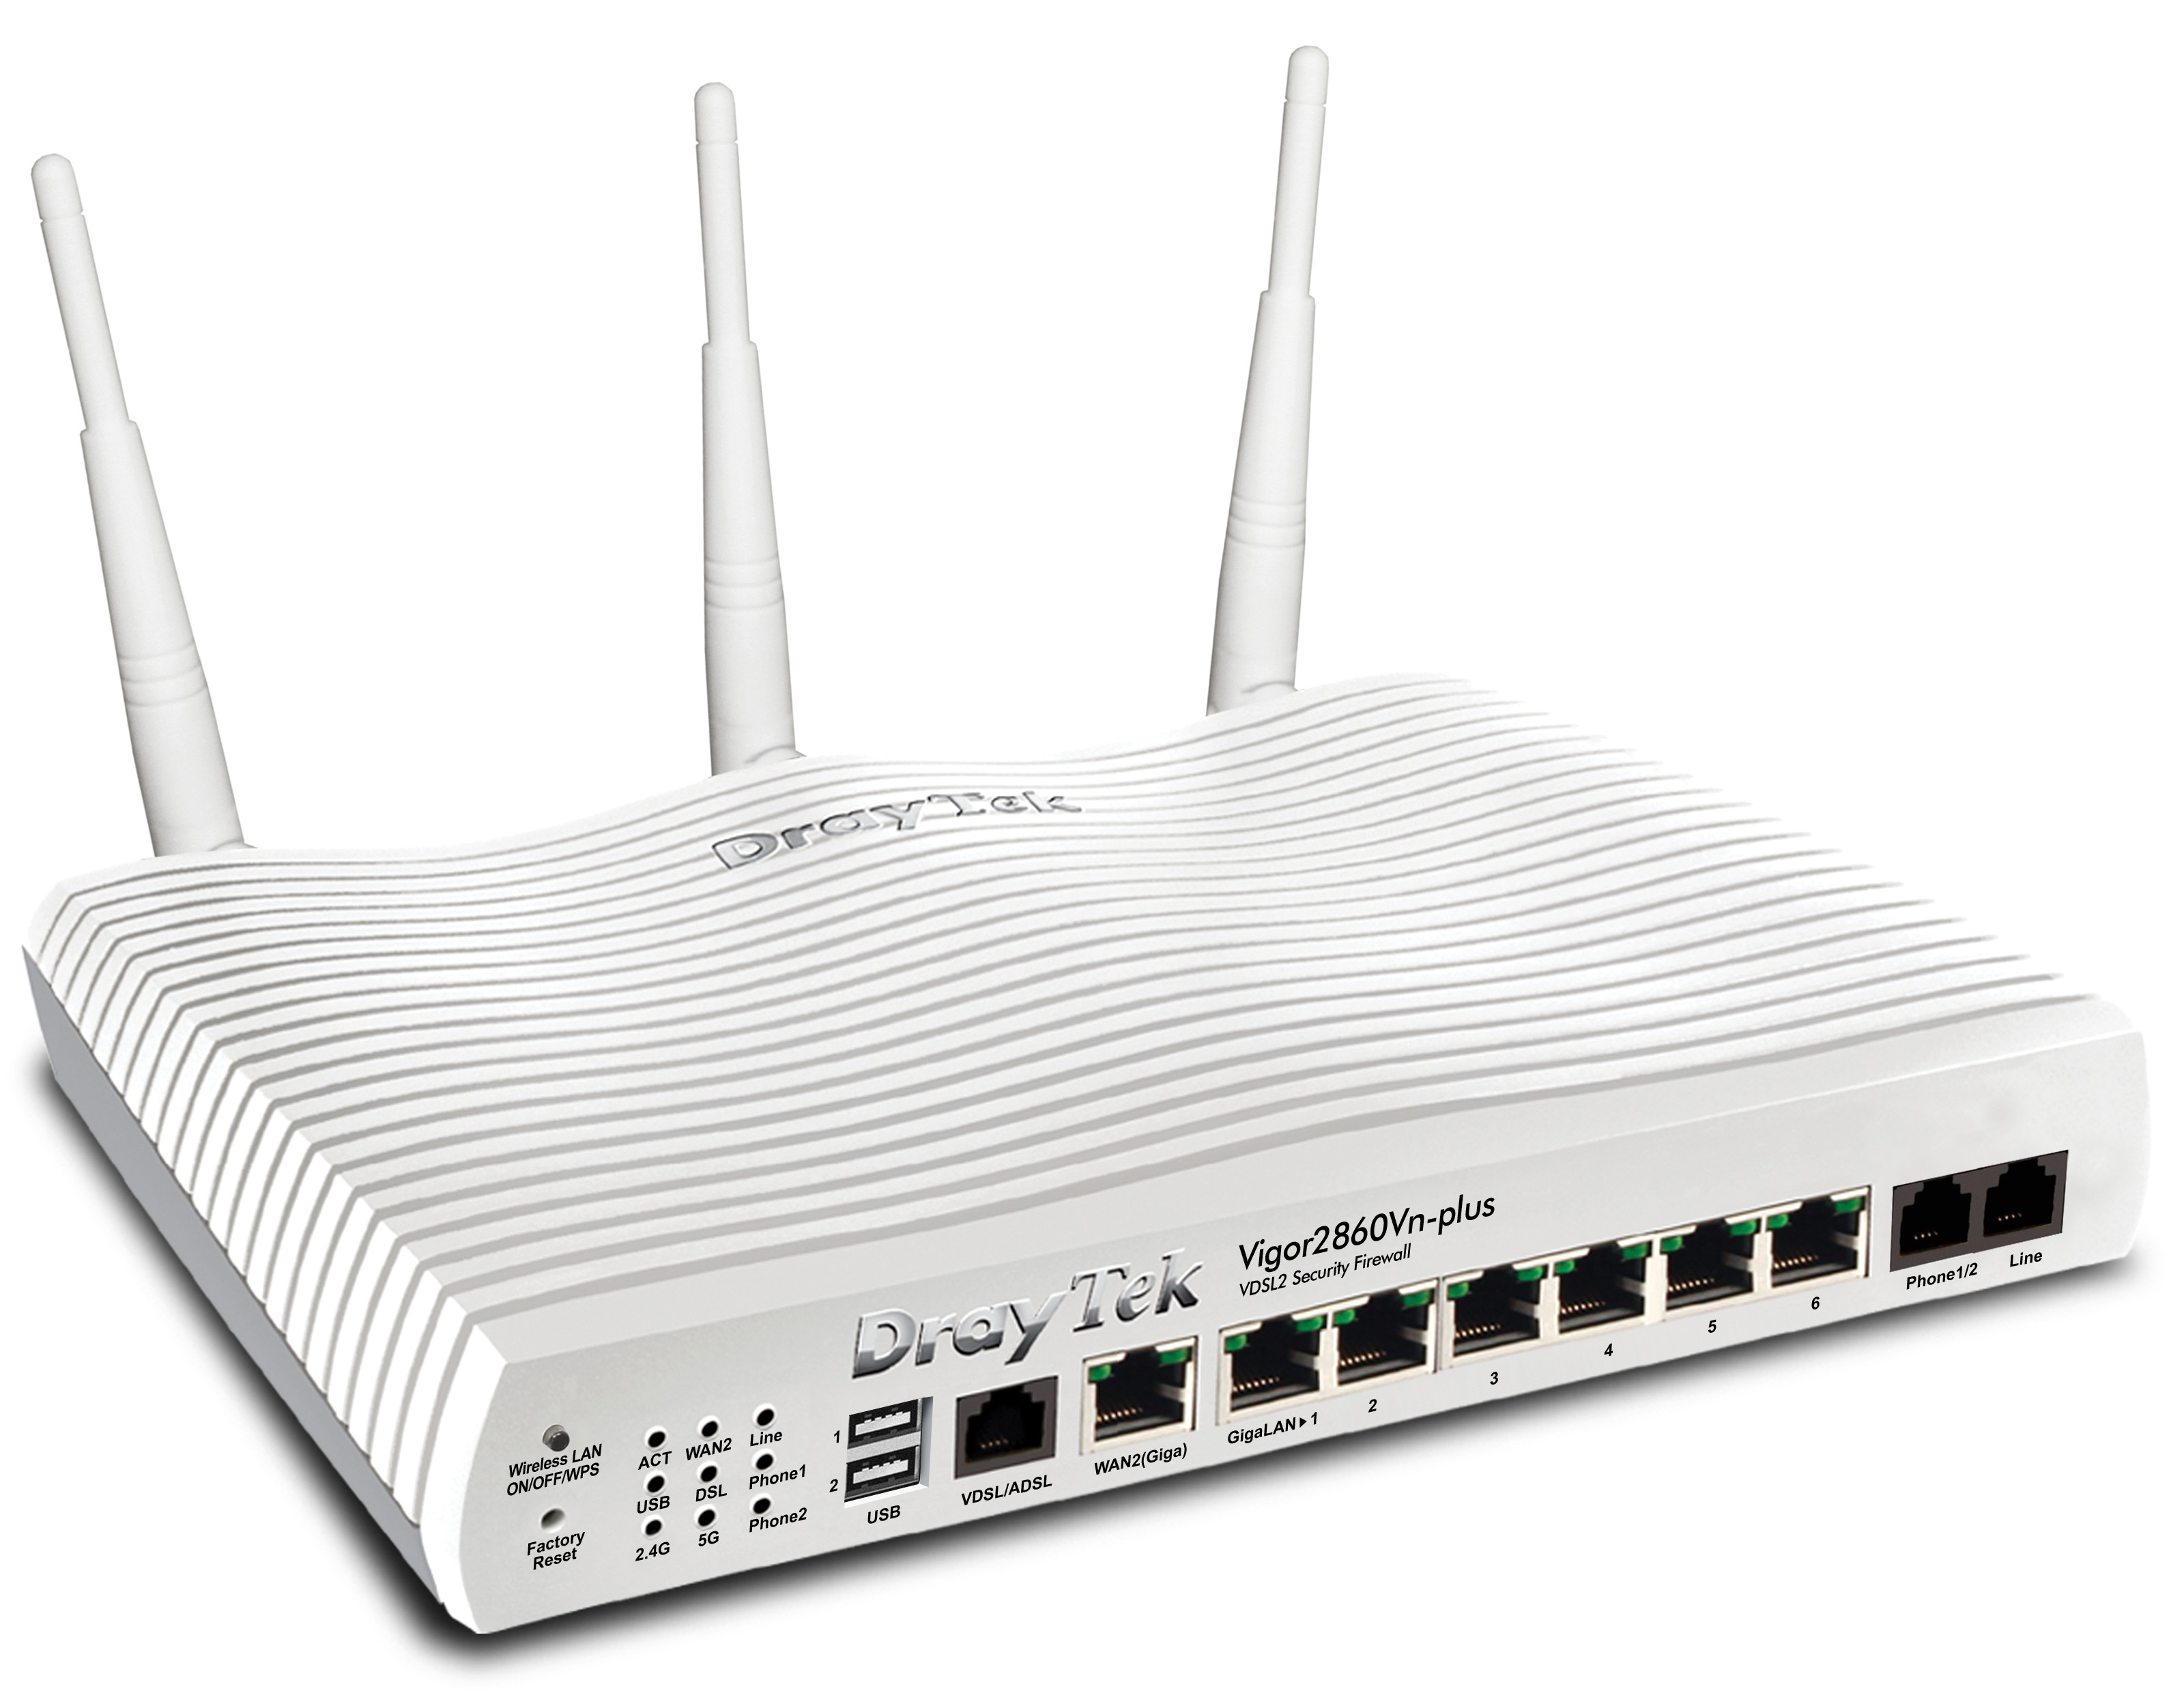 VDSL2-Sicherheits-Firewall Vigor 2860-Serie